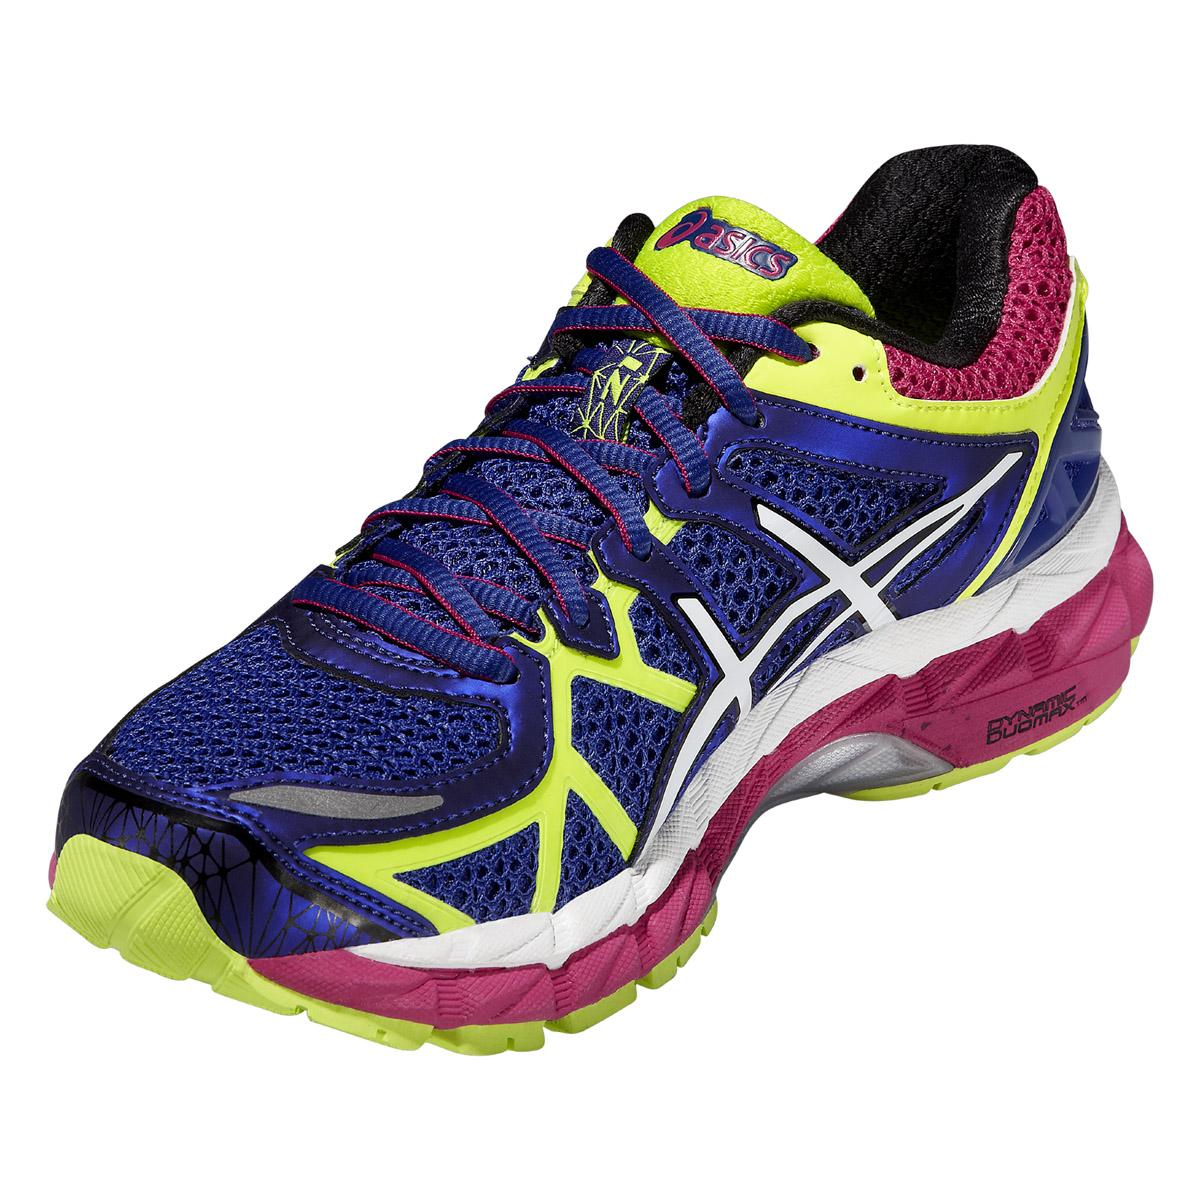 c5dd8fd93364a Asics Womens GEL-Kayano 21 Running Shoes - Blue/Flash Yellow ...